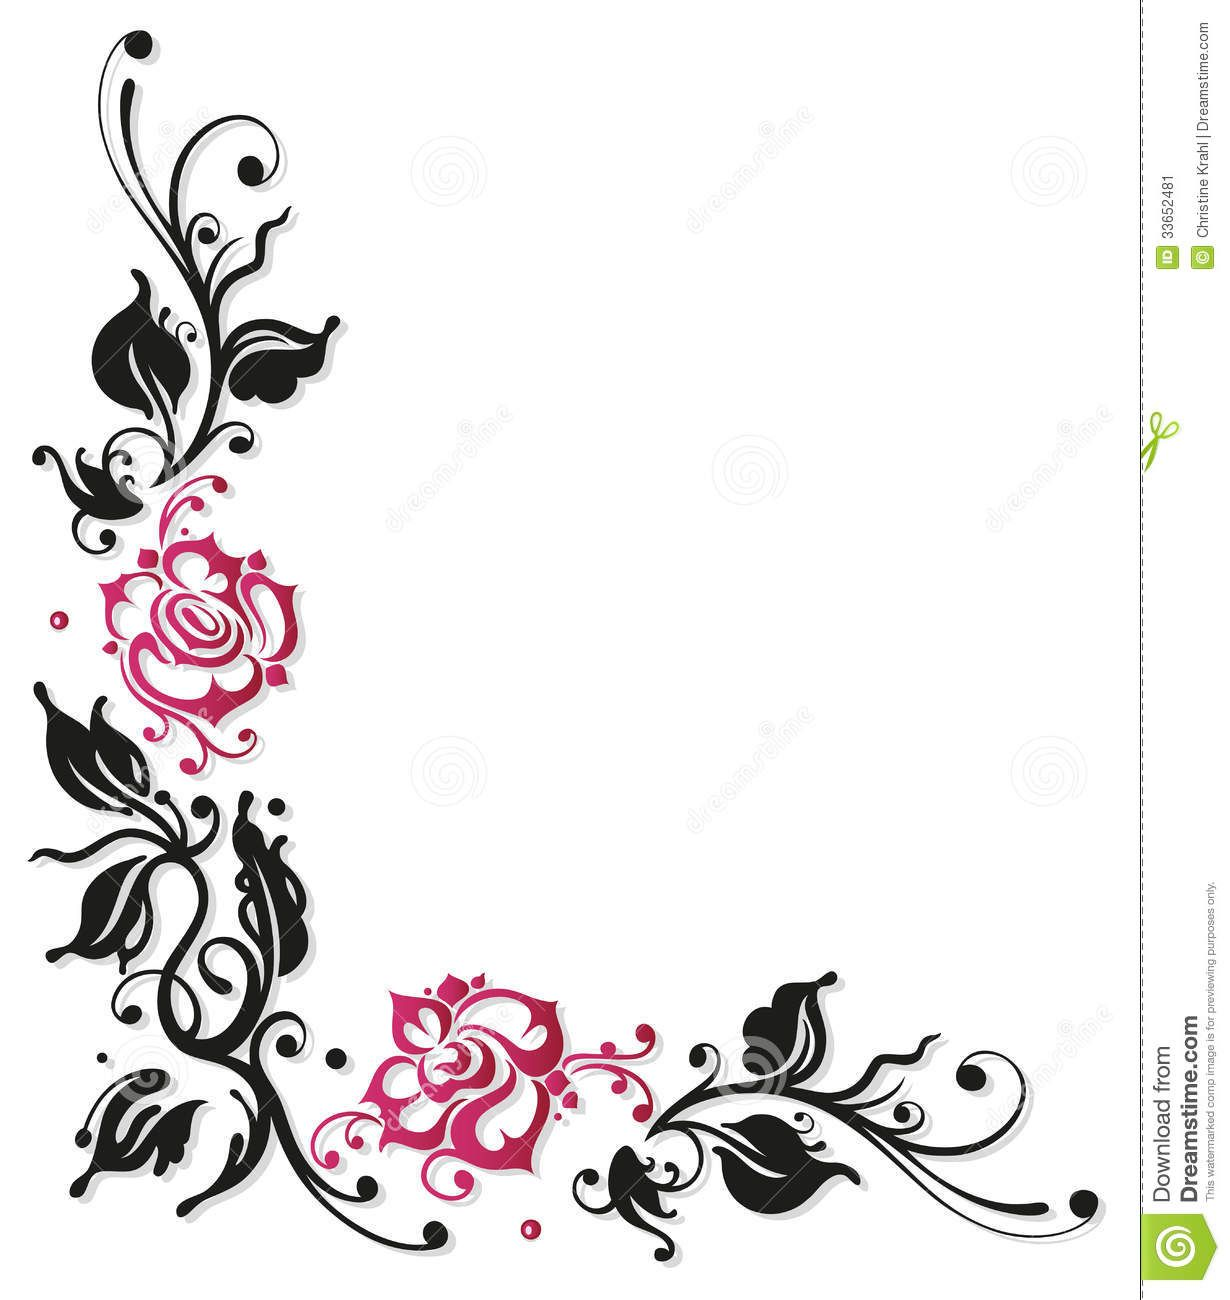 Illustration About Black And Pink Roses Vector Illustration Illustration Of Blossom Floral Design 33 In 2020 Rose Stencil Floral Print Background Stencil Designs